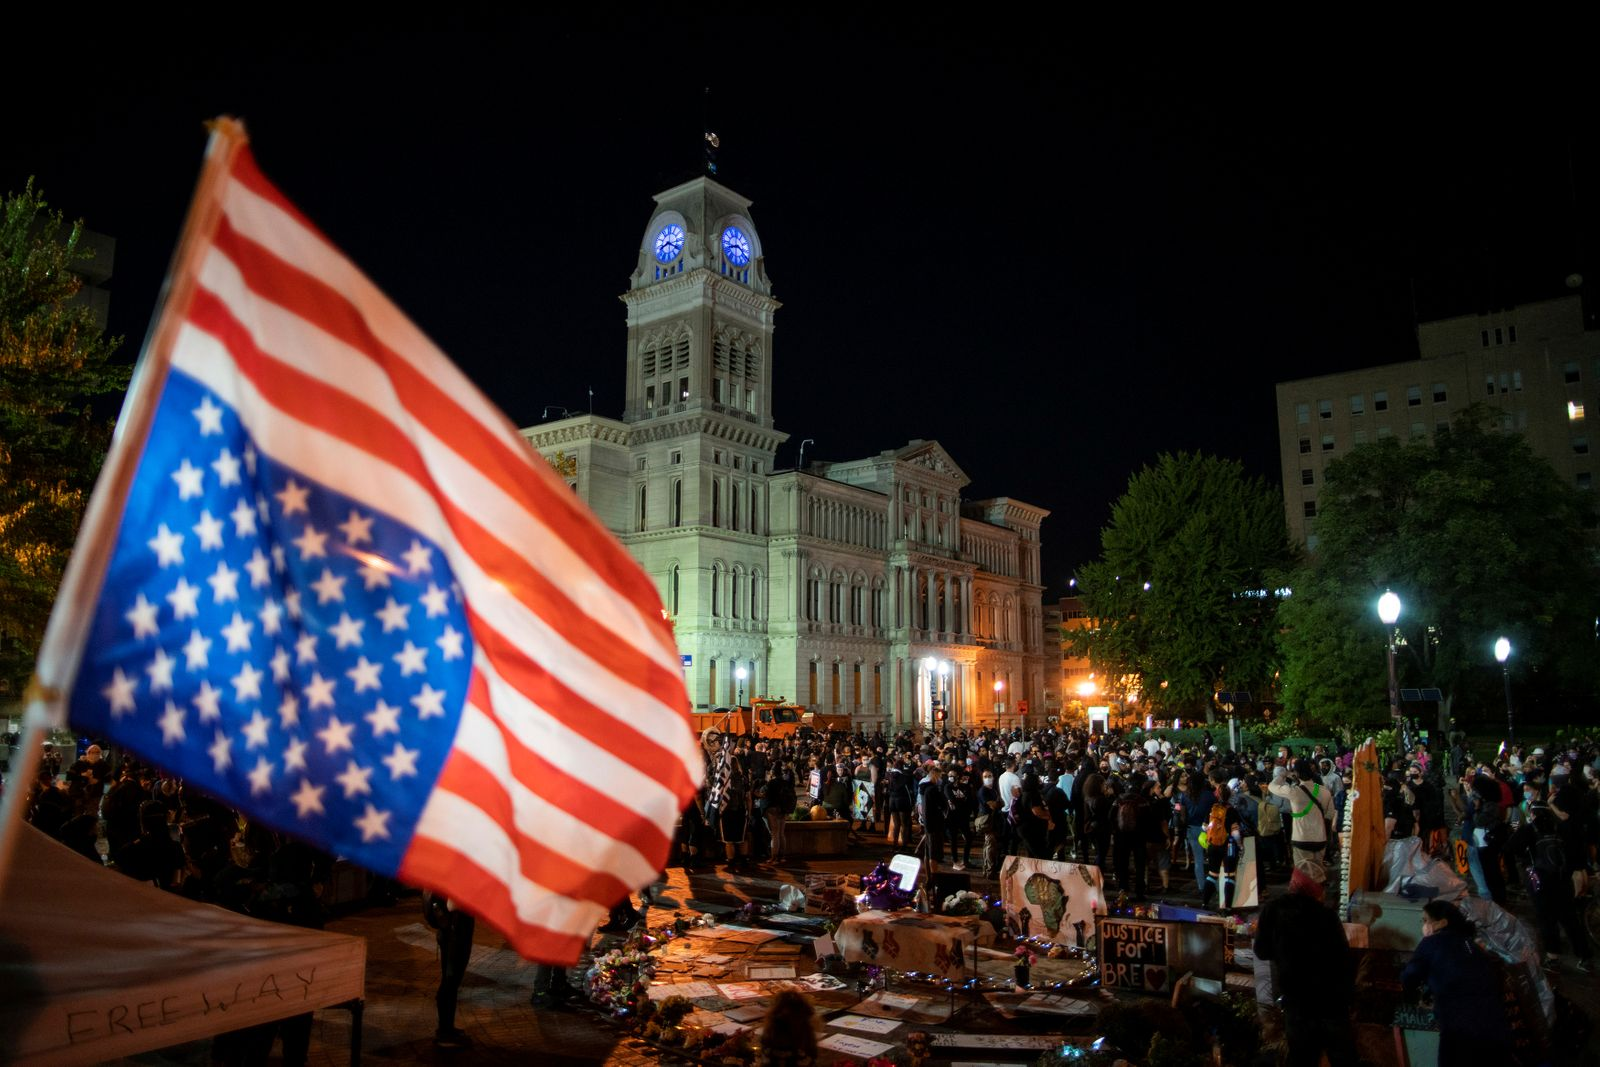 Demonstrators wait for the start of the curfew at Jefferson Square after a grand jury decided not to bring homicide charges against police officers involved in the fatal shooting of Breonna Taylor, in Louisville